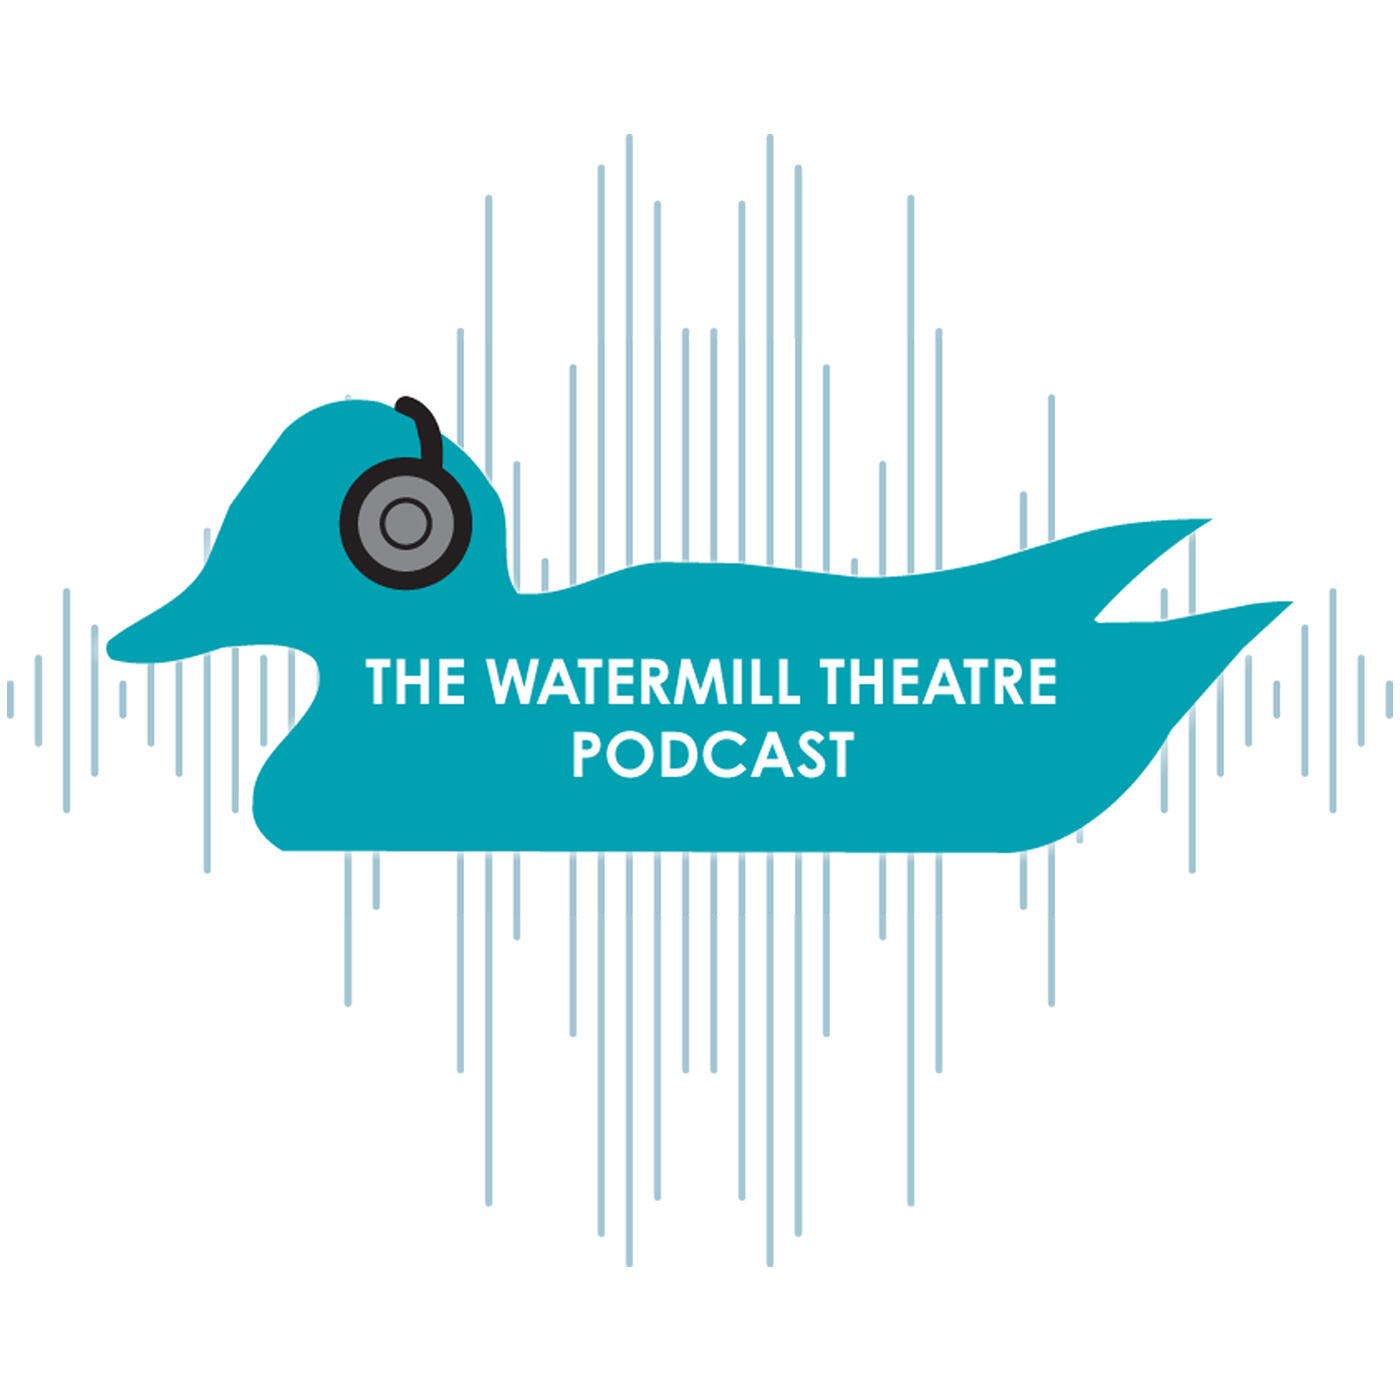 The Watermill Theatre Podcast